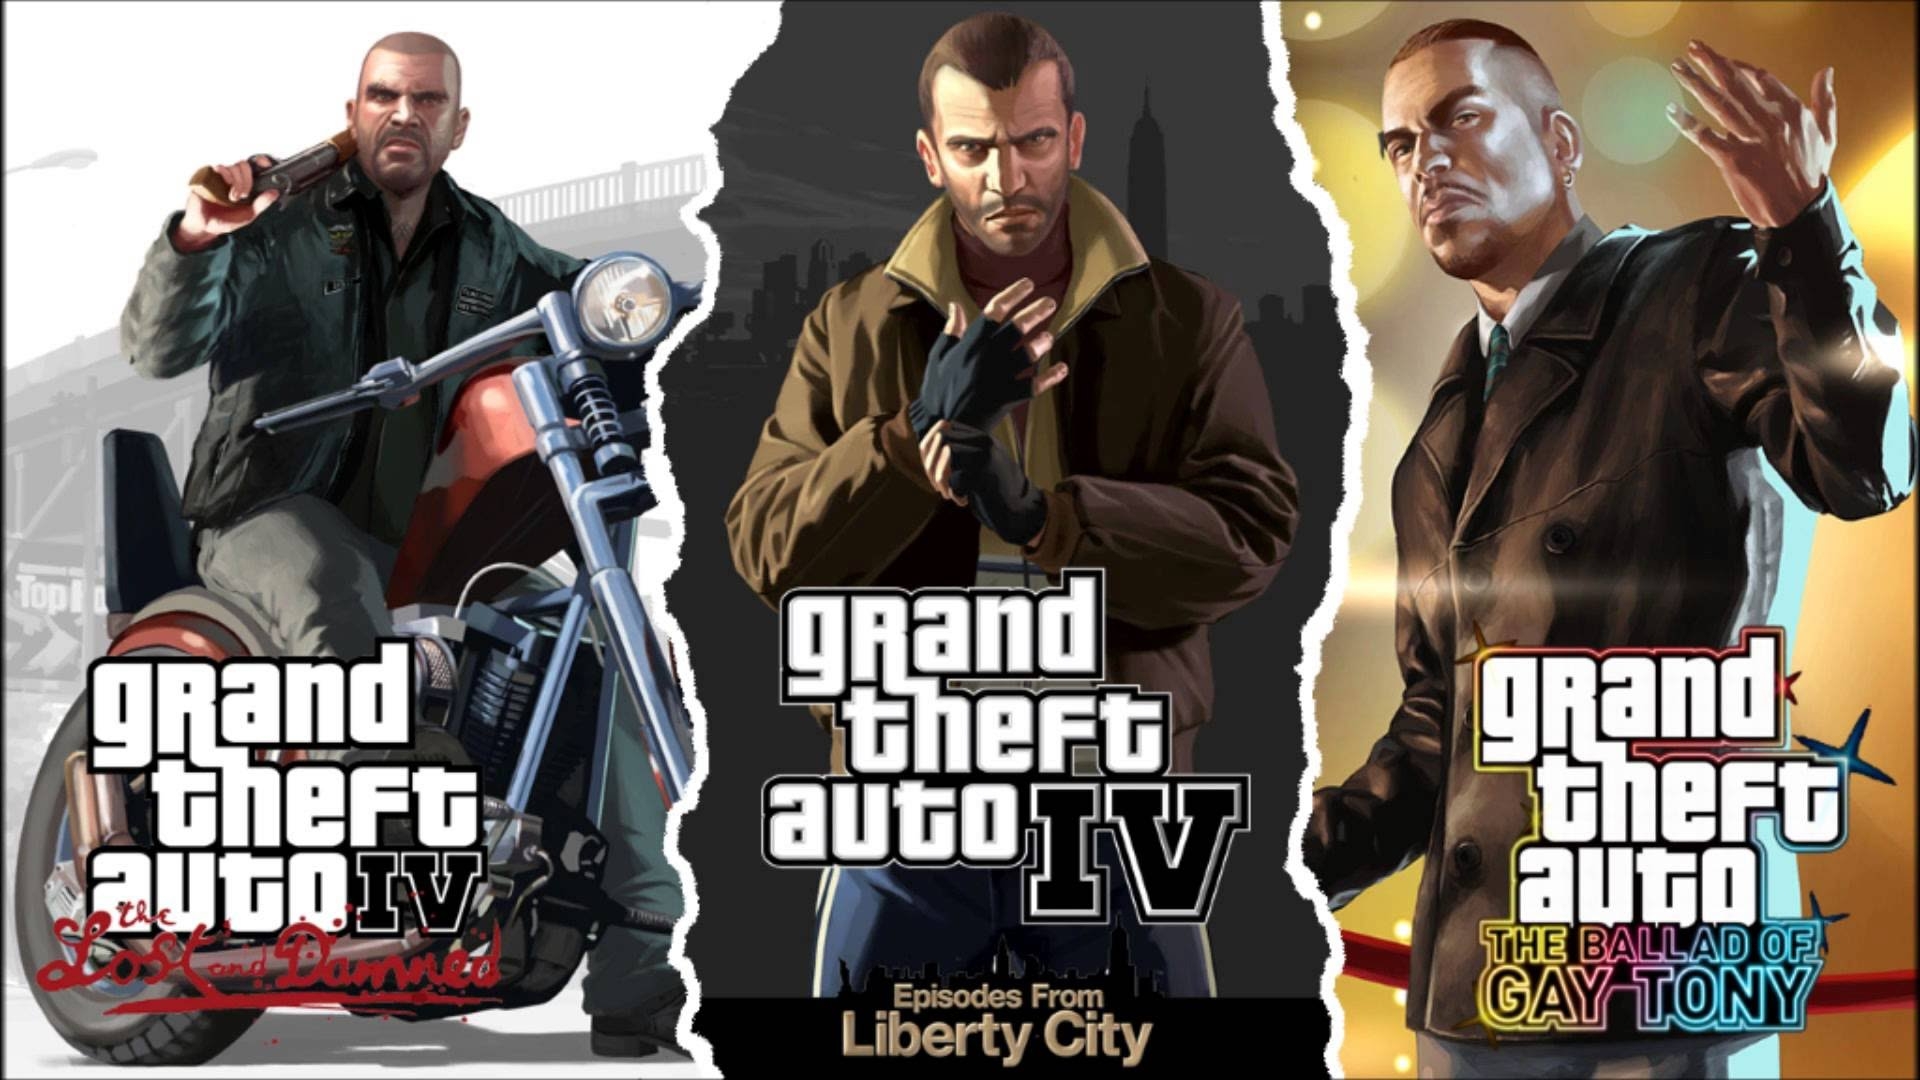 grand theft auto iv computer wallpapers desktop